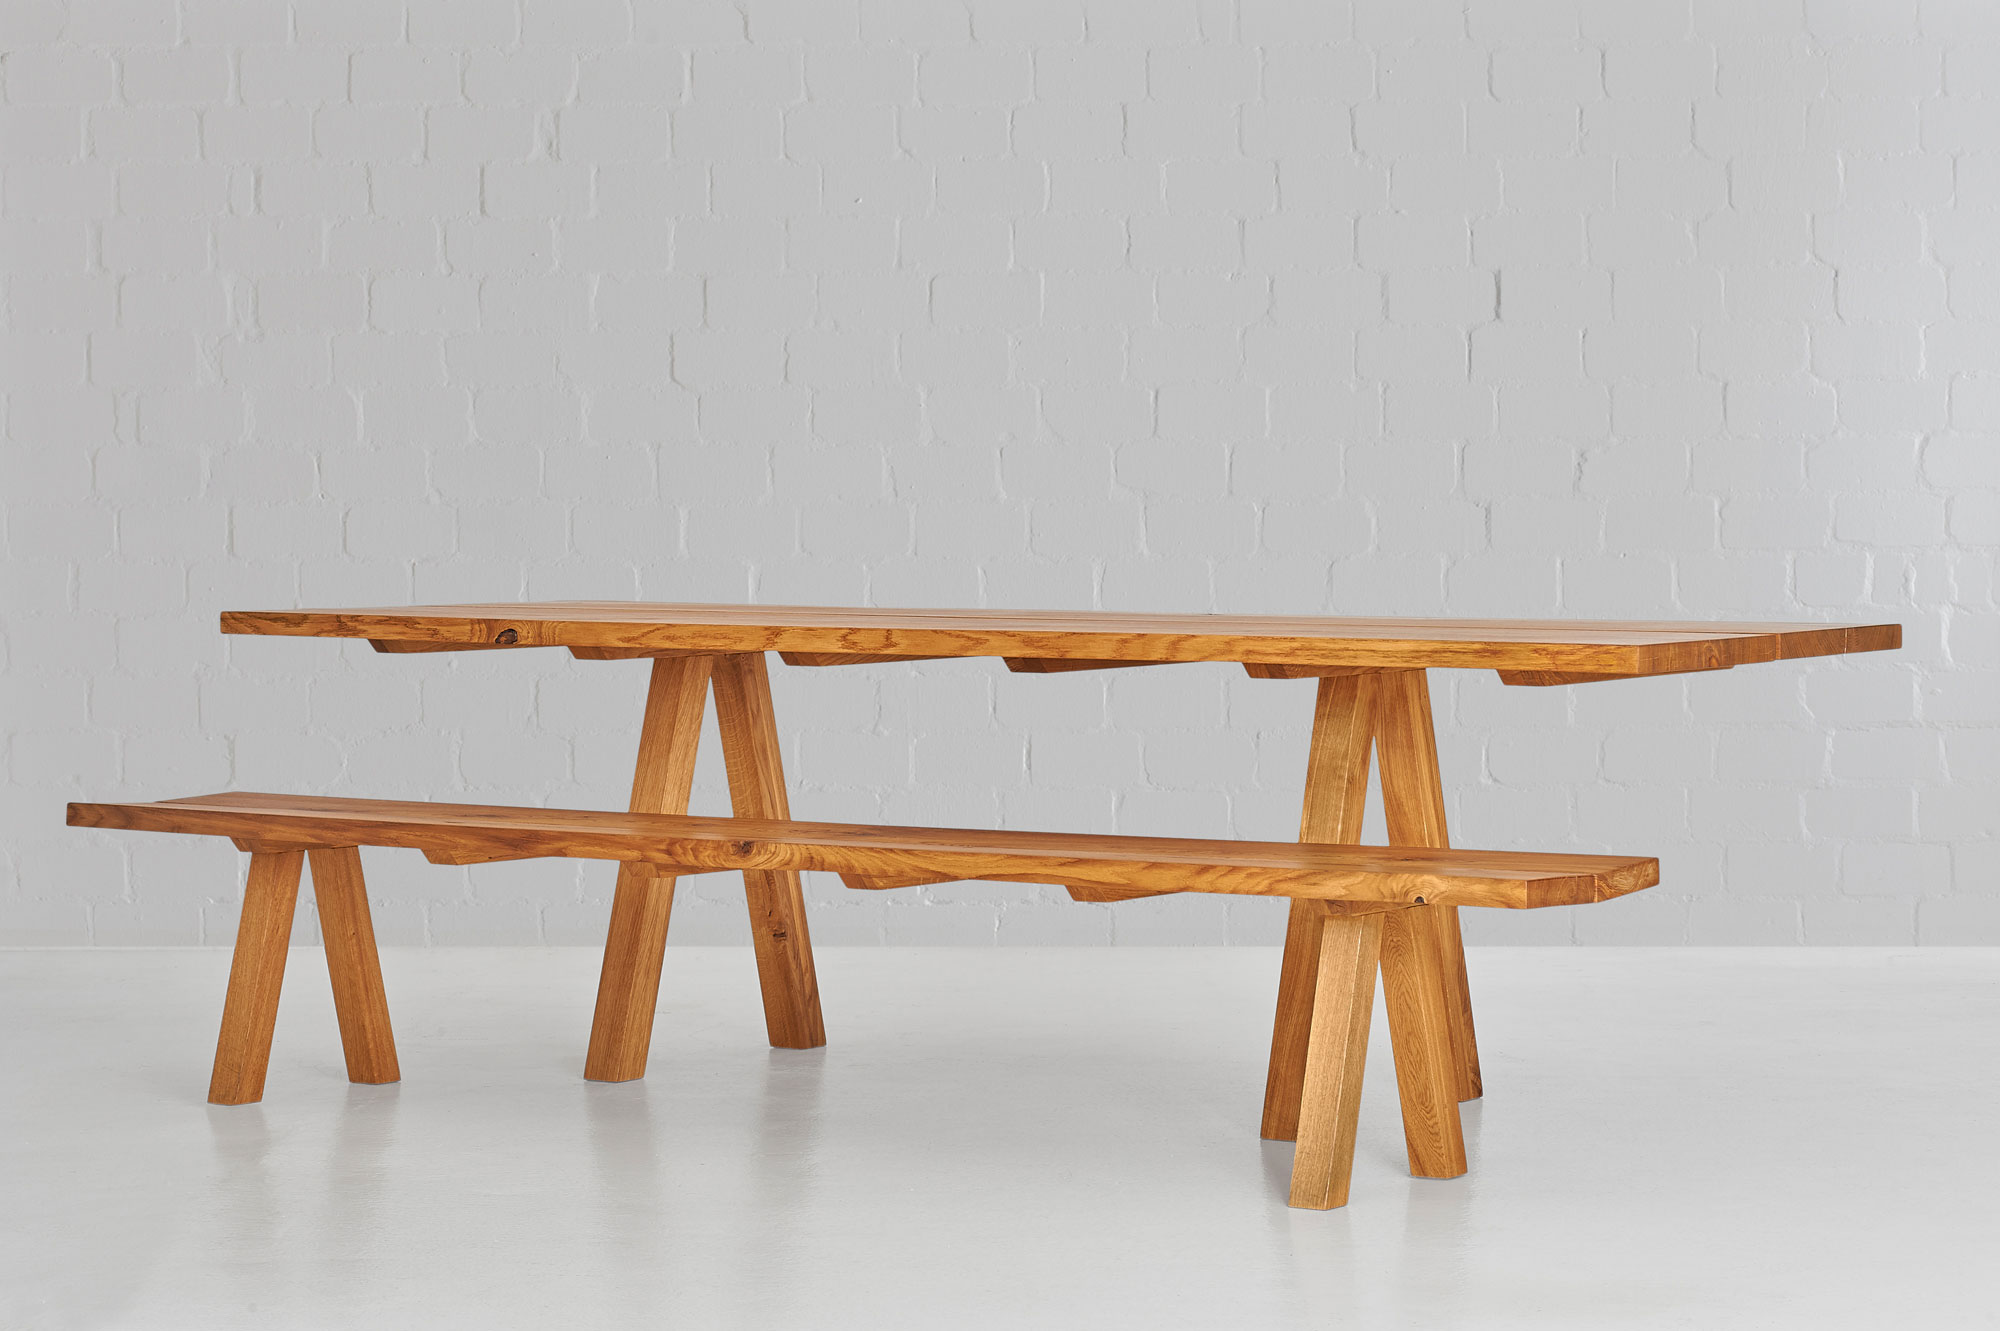 Dining Room Bench PAPILIO 0460 custom made in solid wood by vitamin design